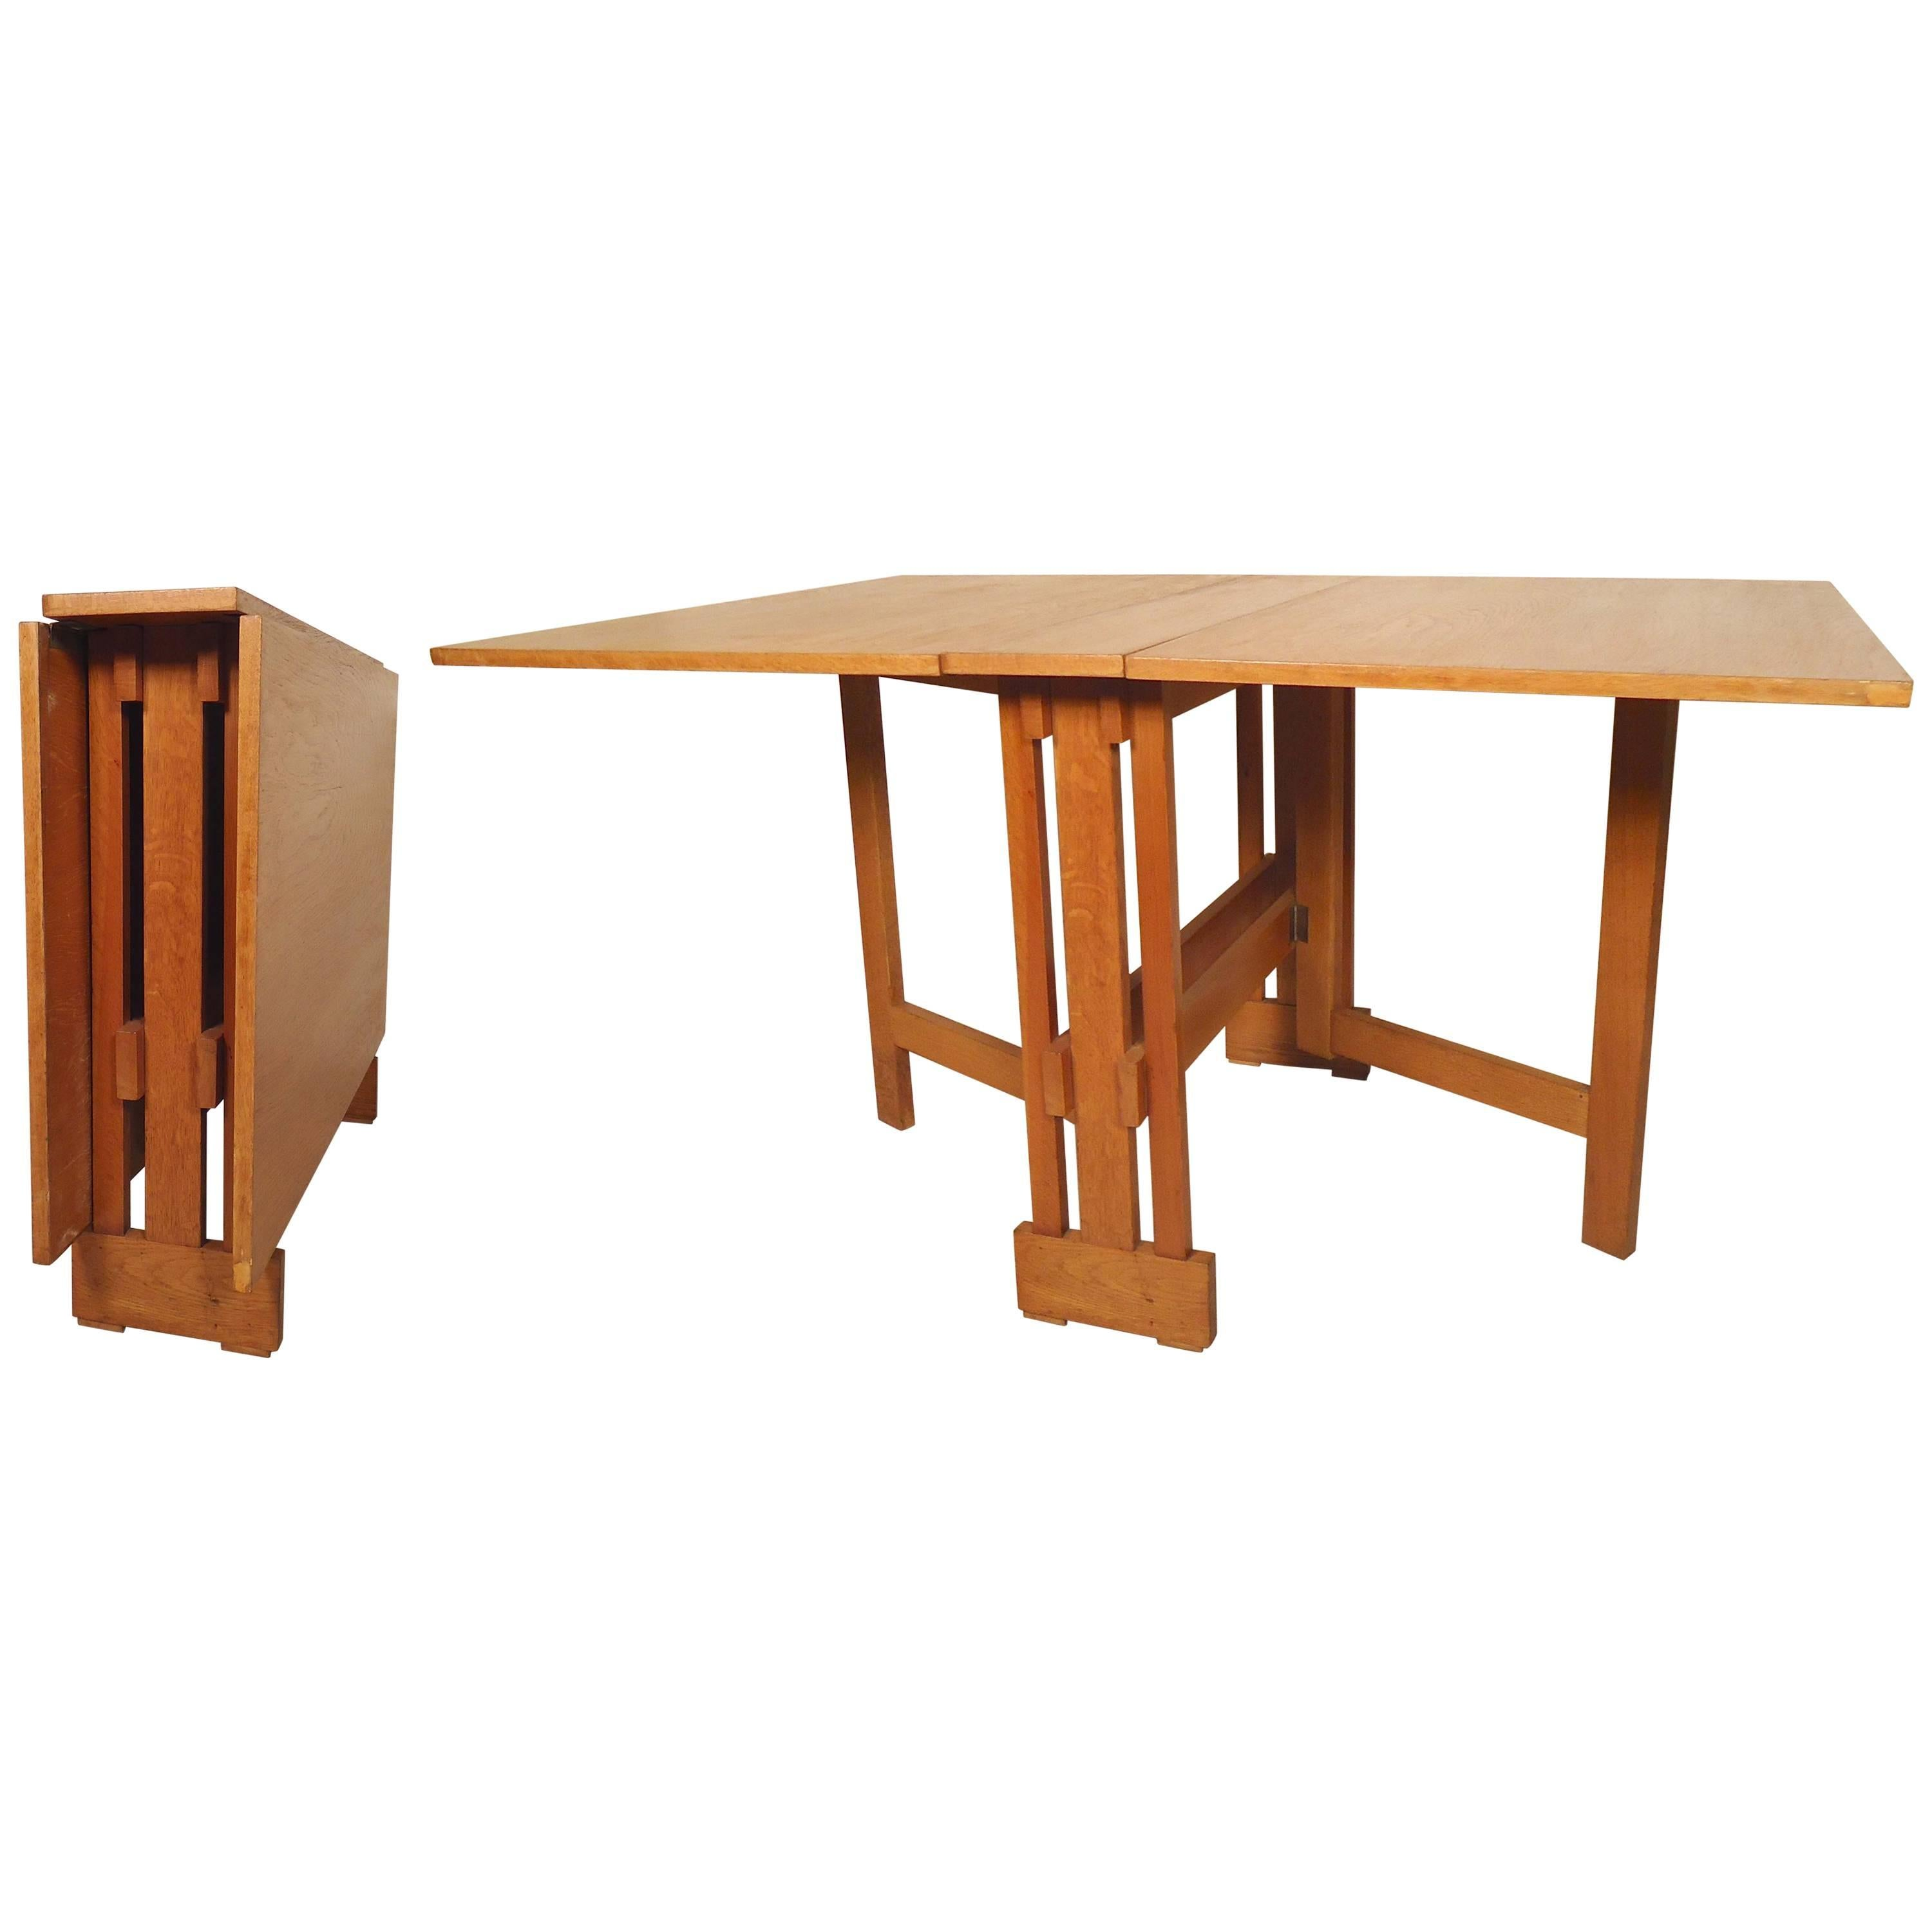 Drop Leaf Console Dining Table The Lynden Drop Leaf  : 8135703master from www.checkoutethiopia.com size 3000 x 3000 jpeg 252kB